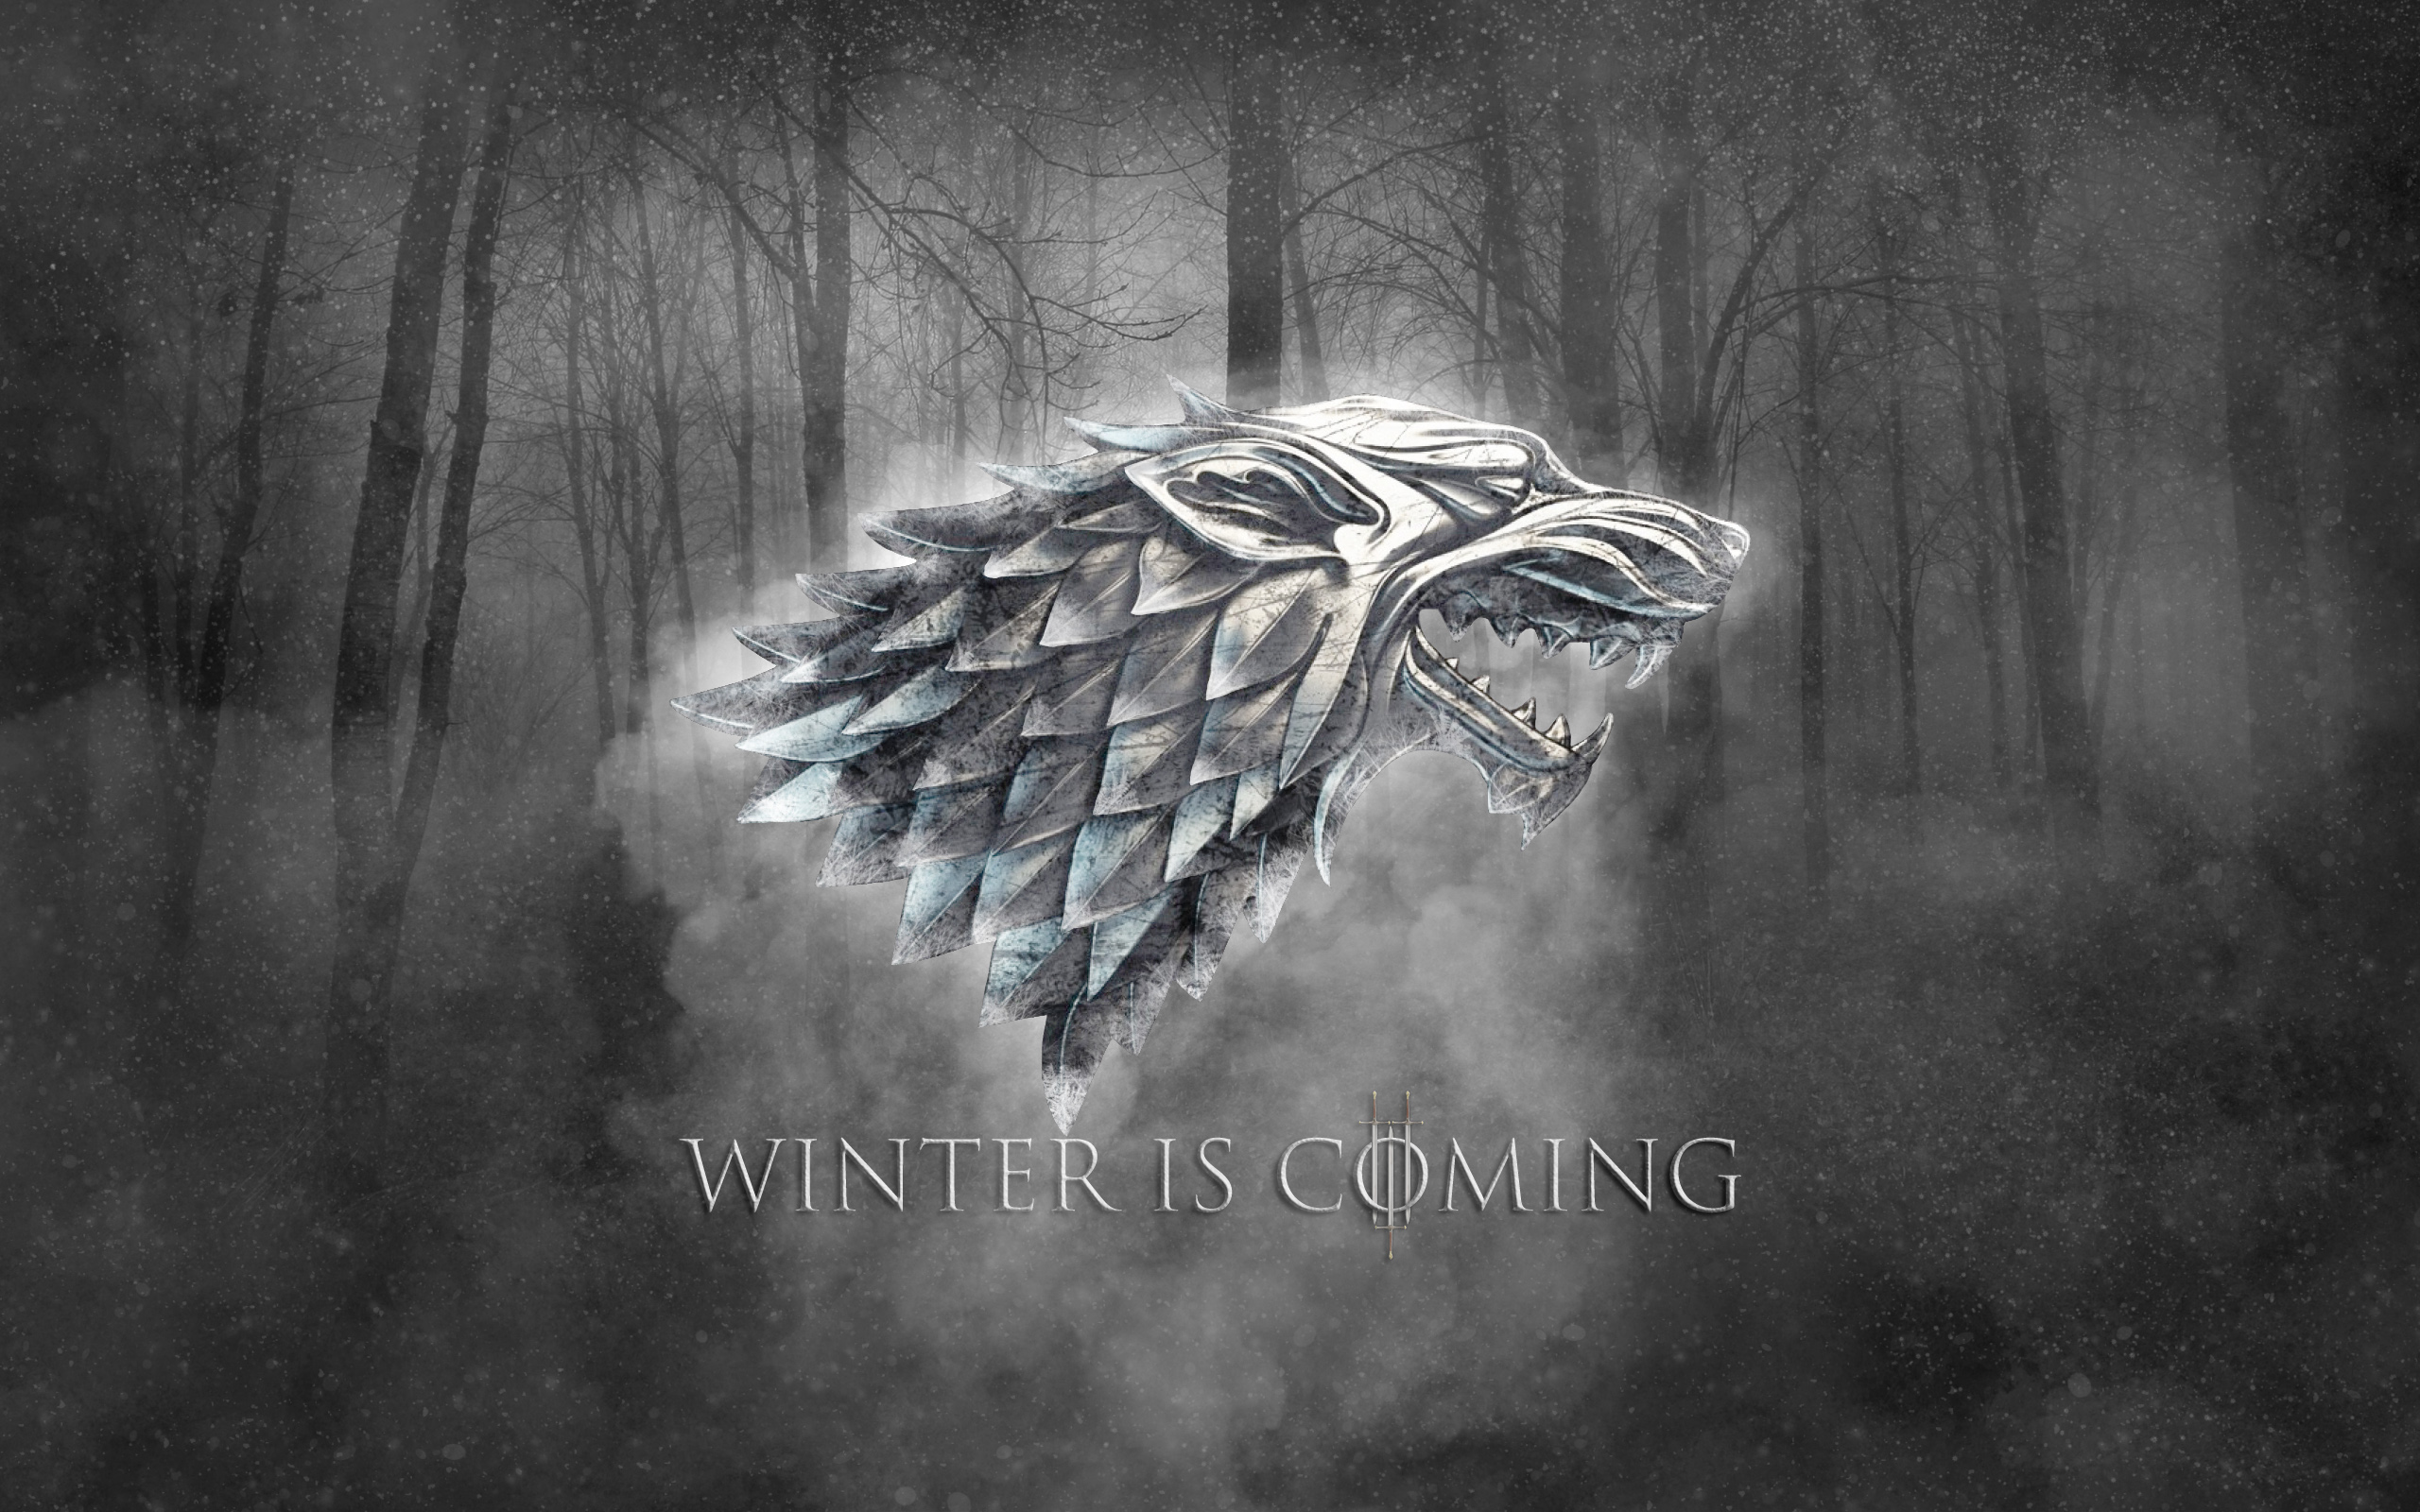 winter_is_coming_stark_by_bbboz-d68p15j